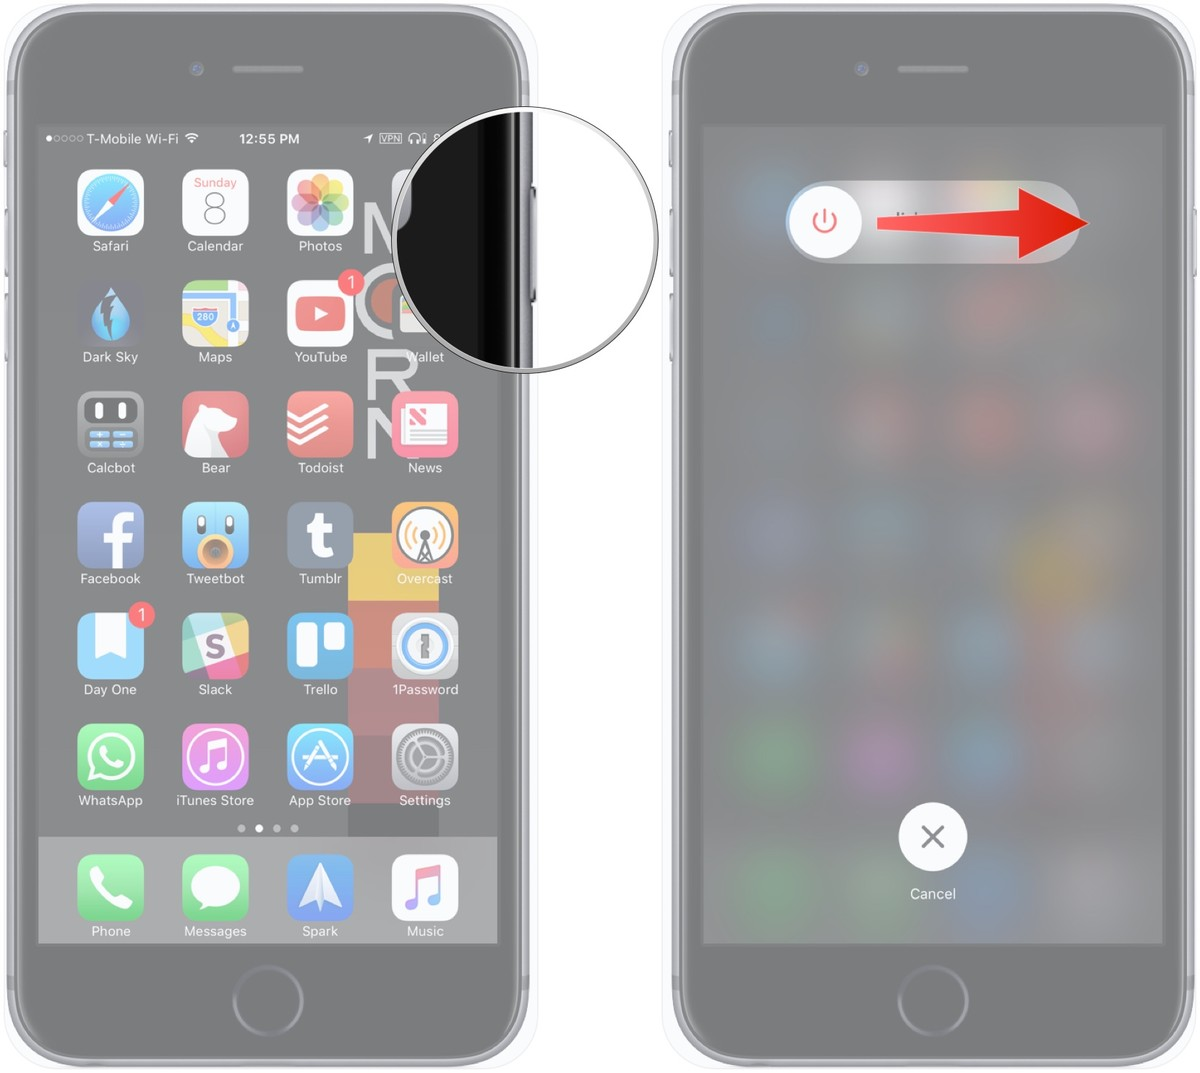 10 Shortcuts Every iPhone and iPod User Need to Know - Image 1